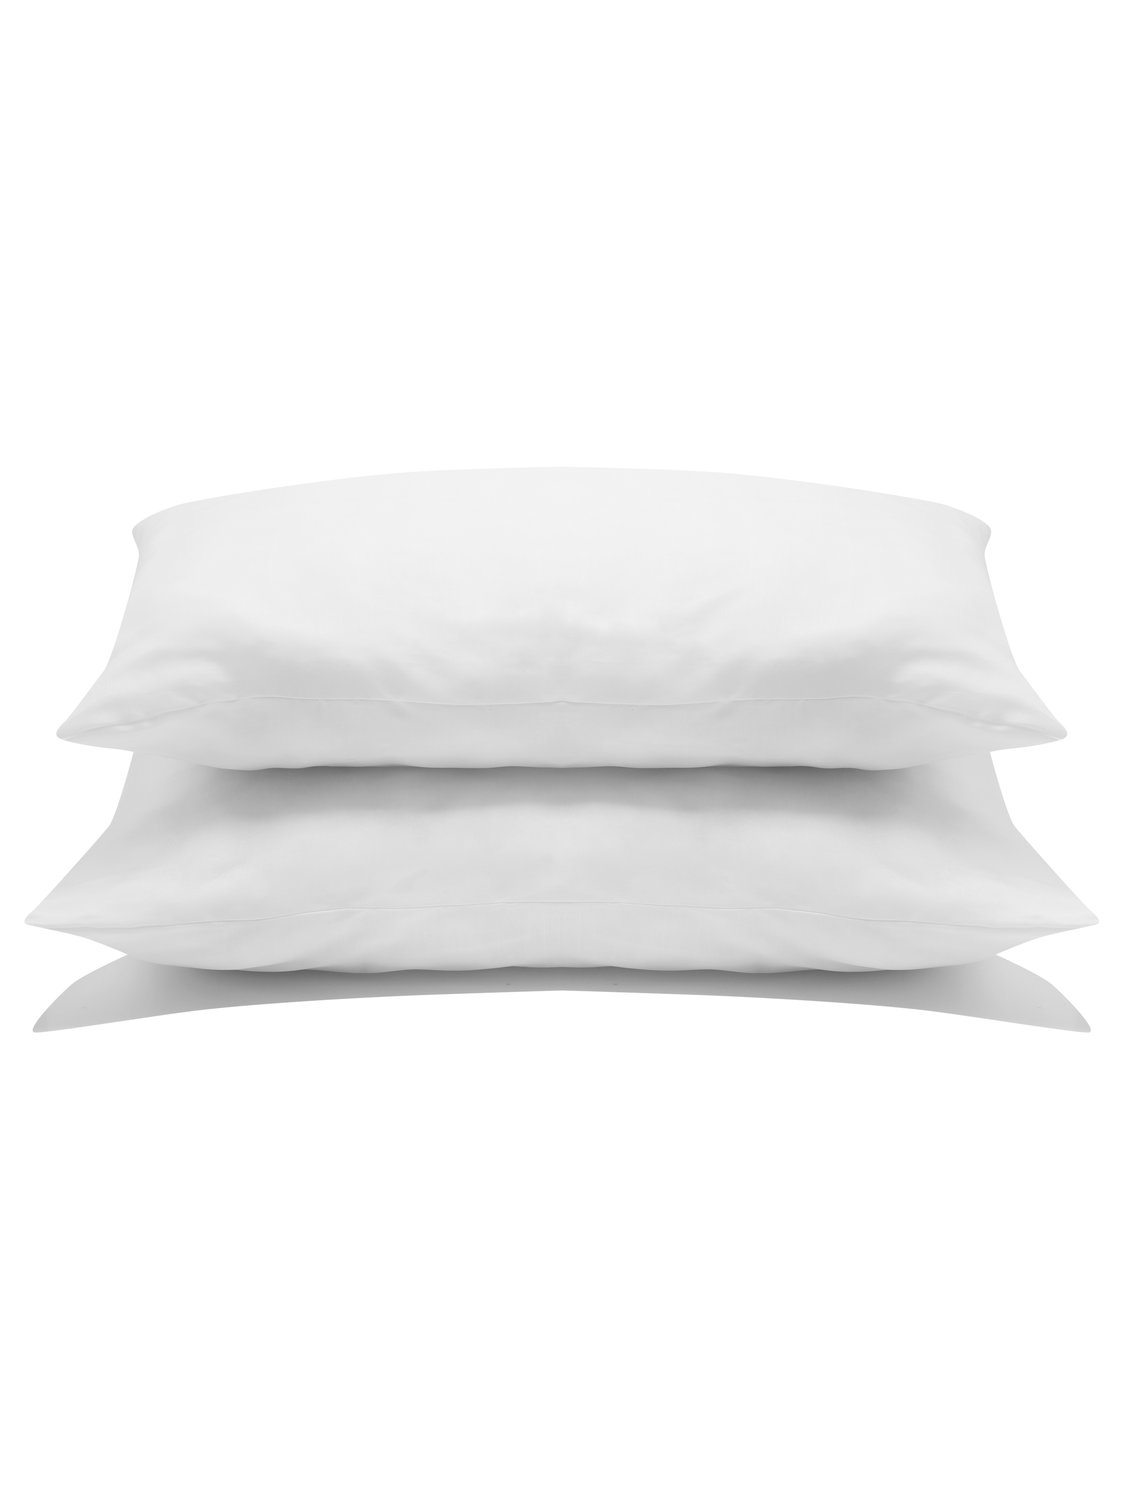 bounceback anti allergy pillow pair - 2 pack - soft support for front sleepers  - white